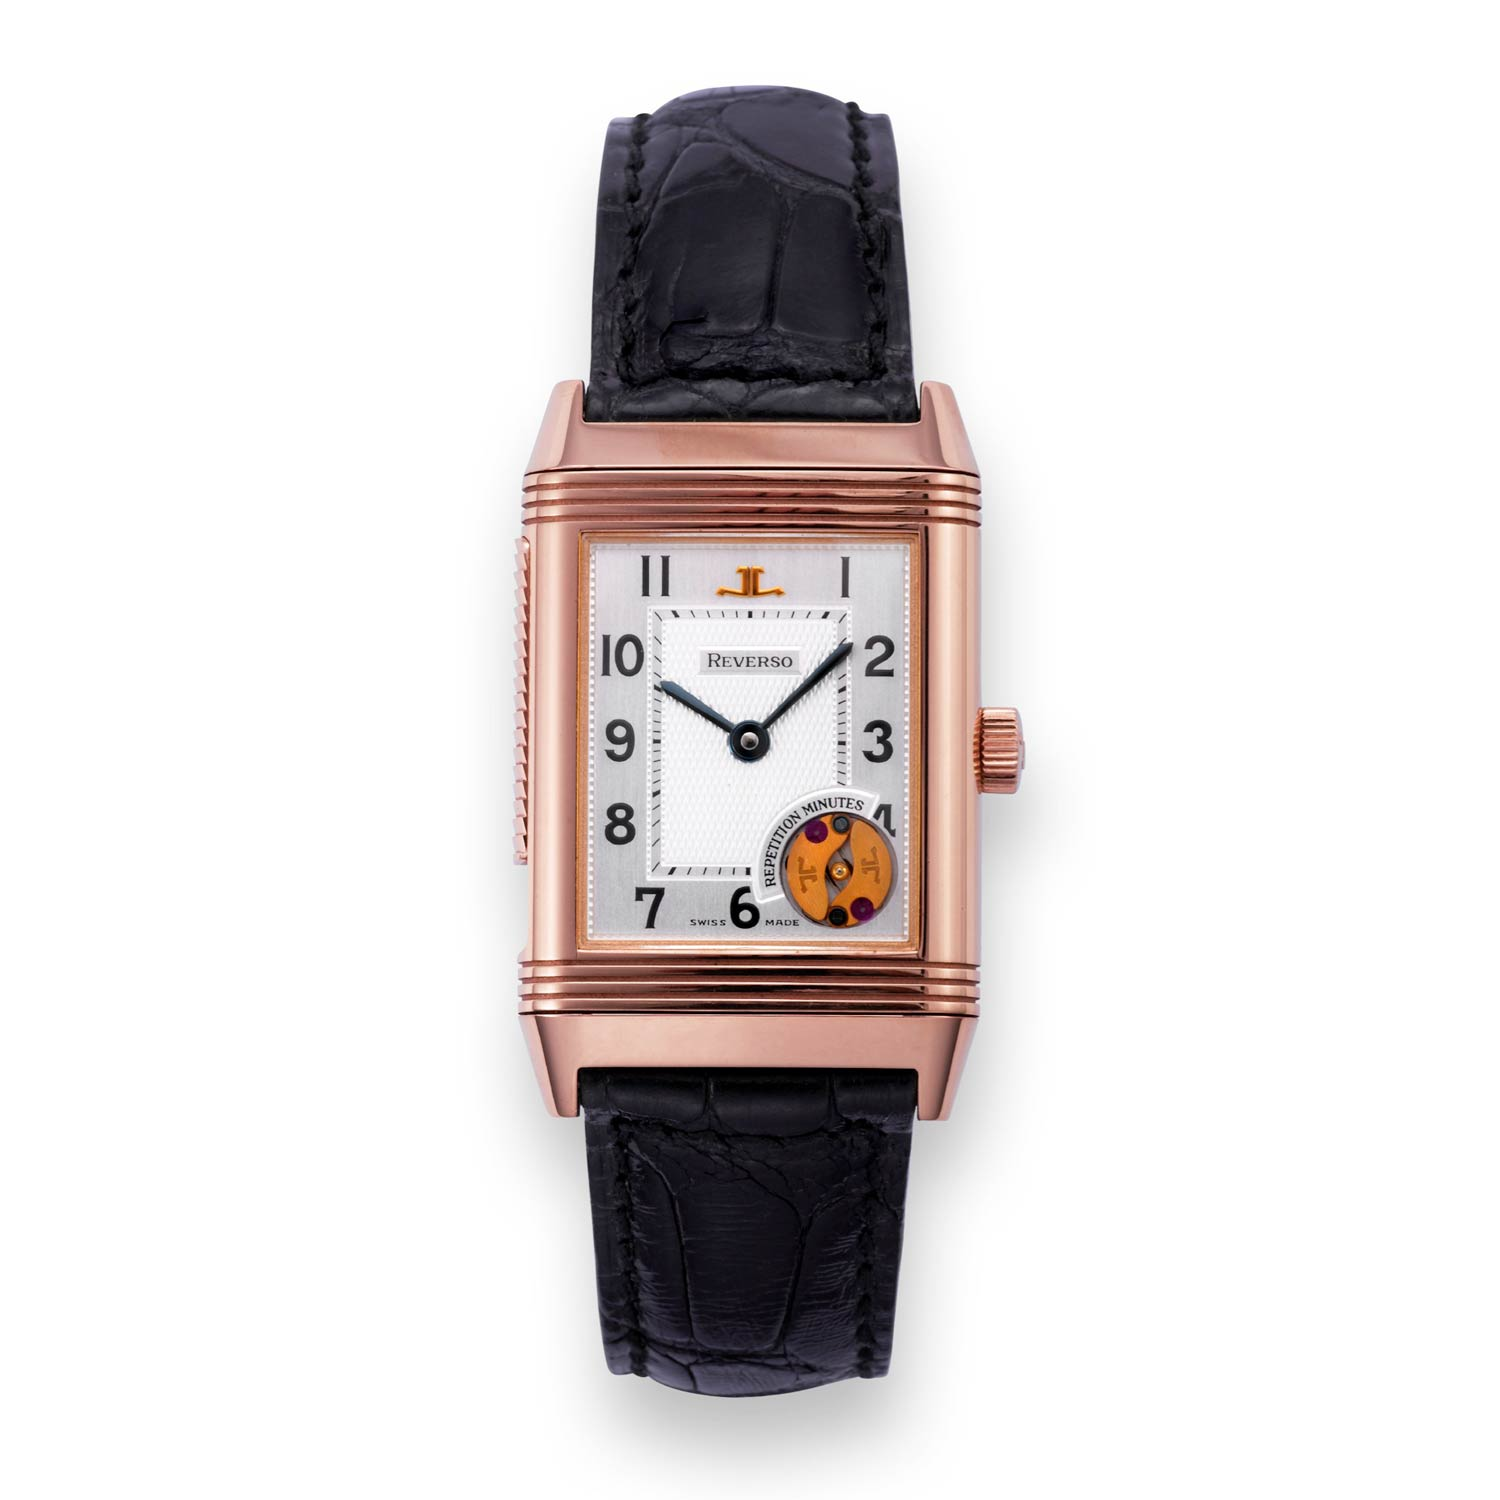 Introduced in 1994, the Reverso Répétition Minutes was equipped with the world's first rectangular minute repeater movement.